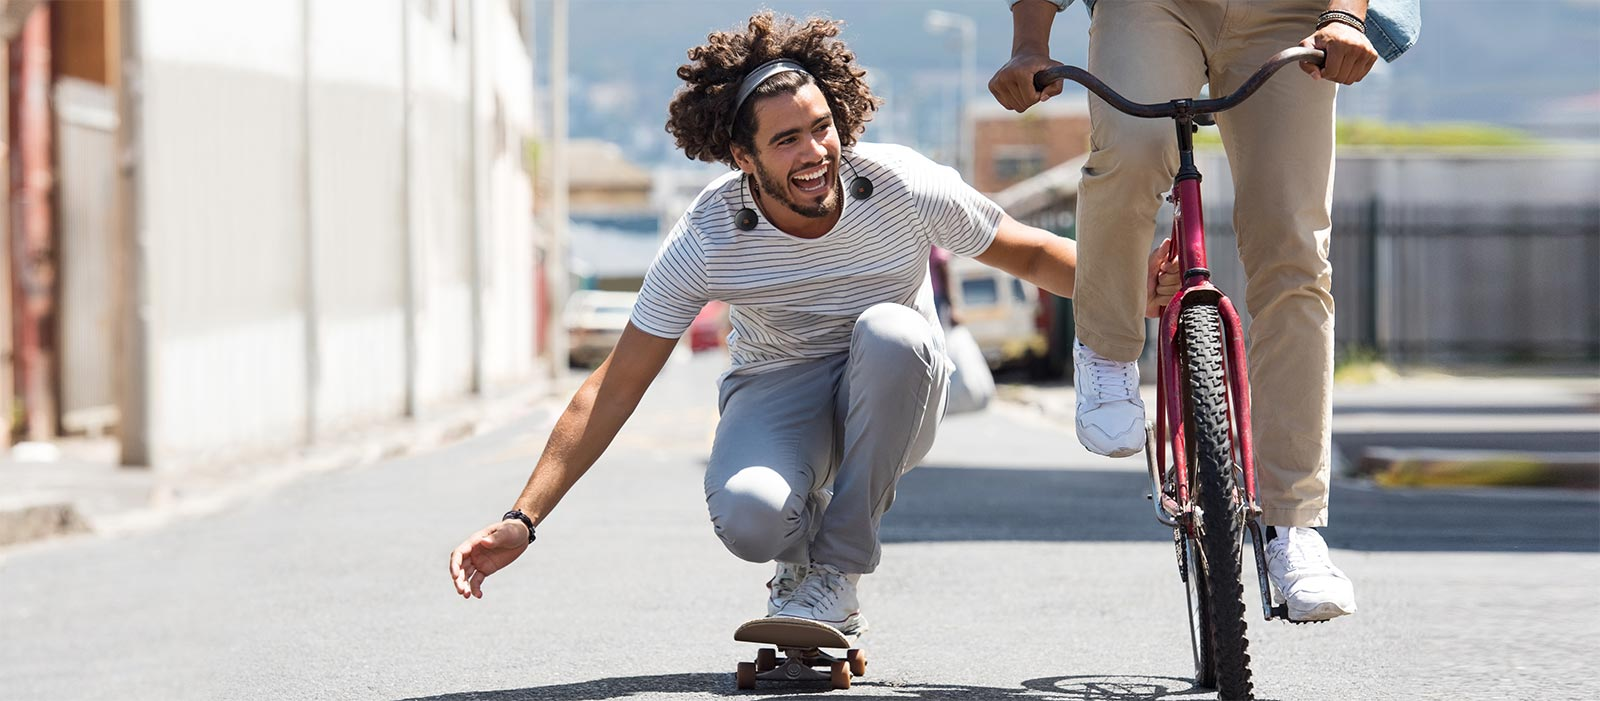 urban skater bluetooth portable speakers